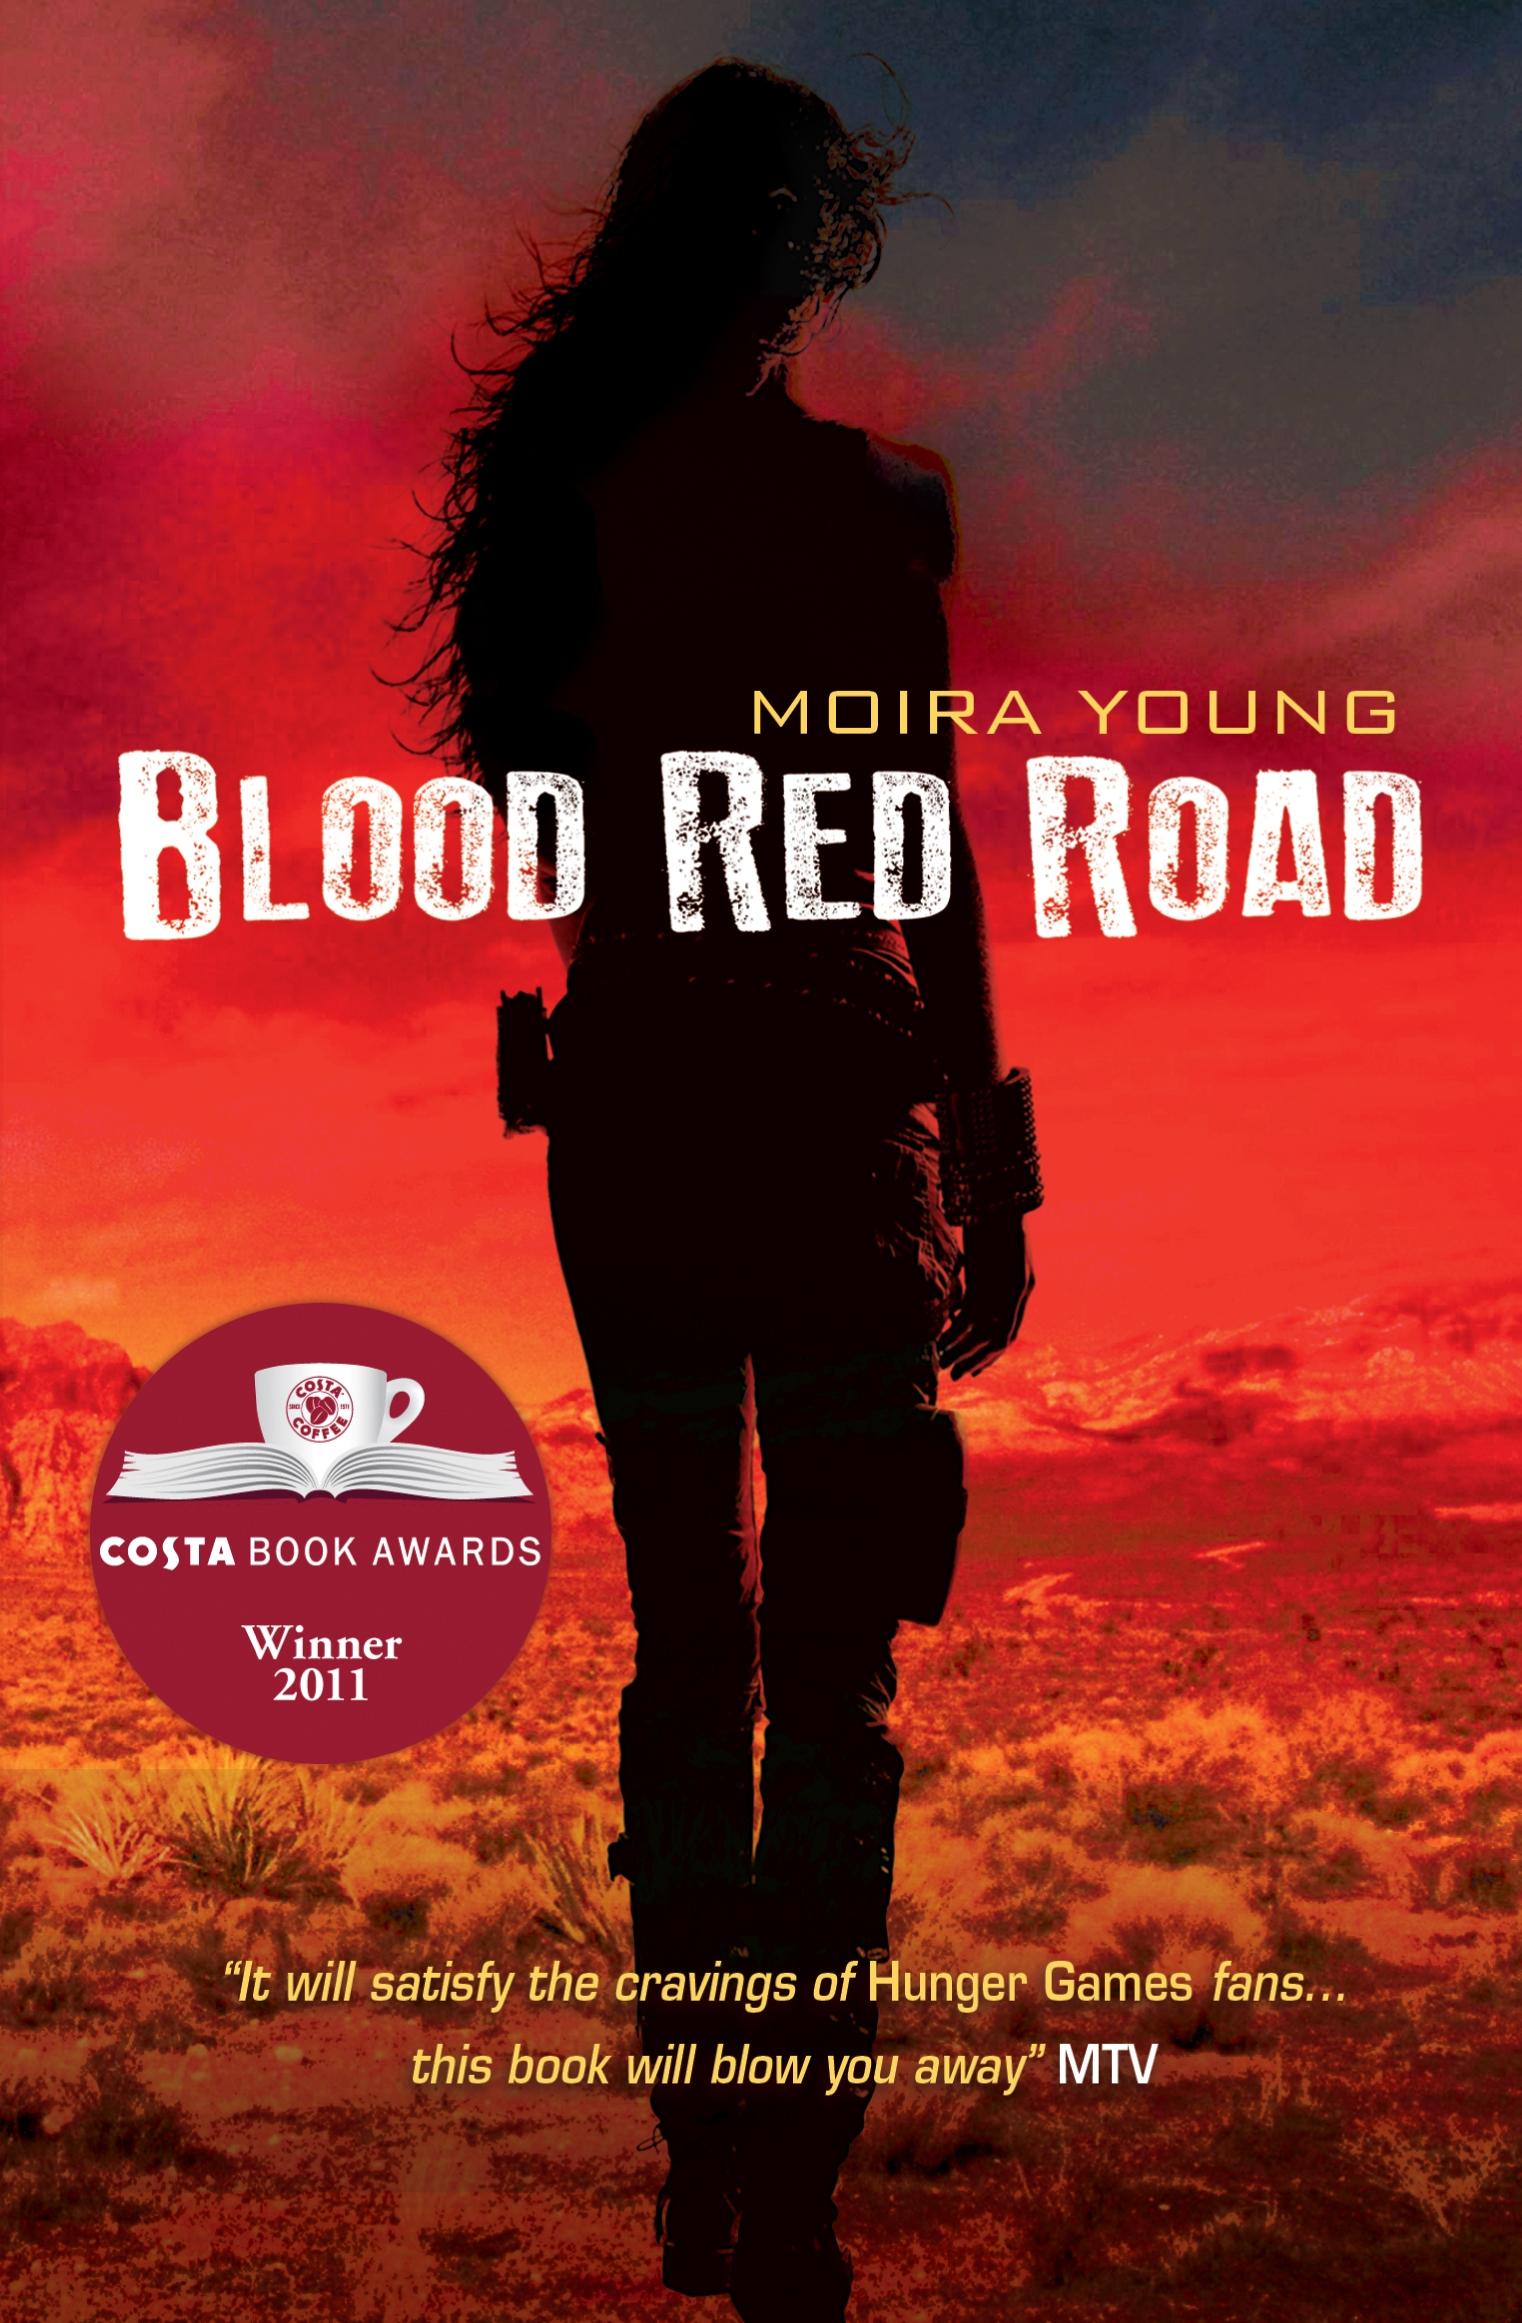 http://images.scholastic.co.uk/assets/a/d7/21/blood-red-road-911407.jpg